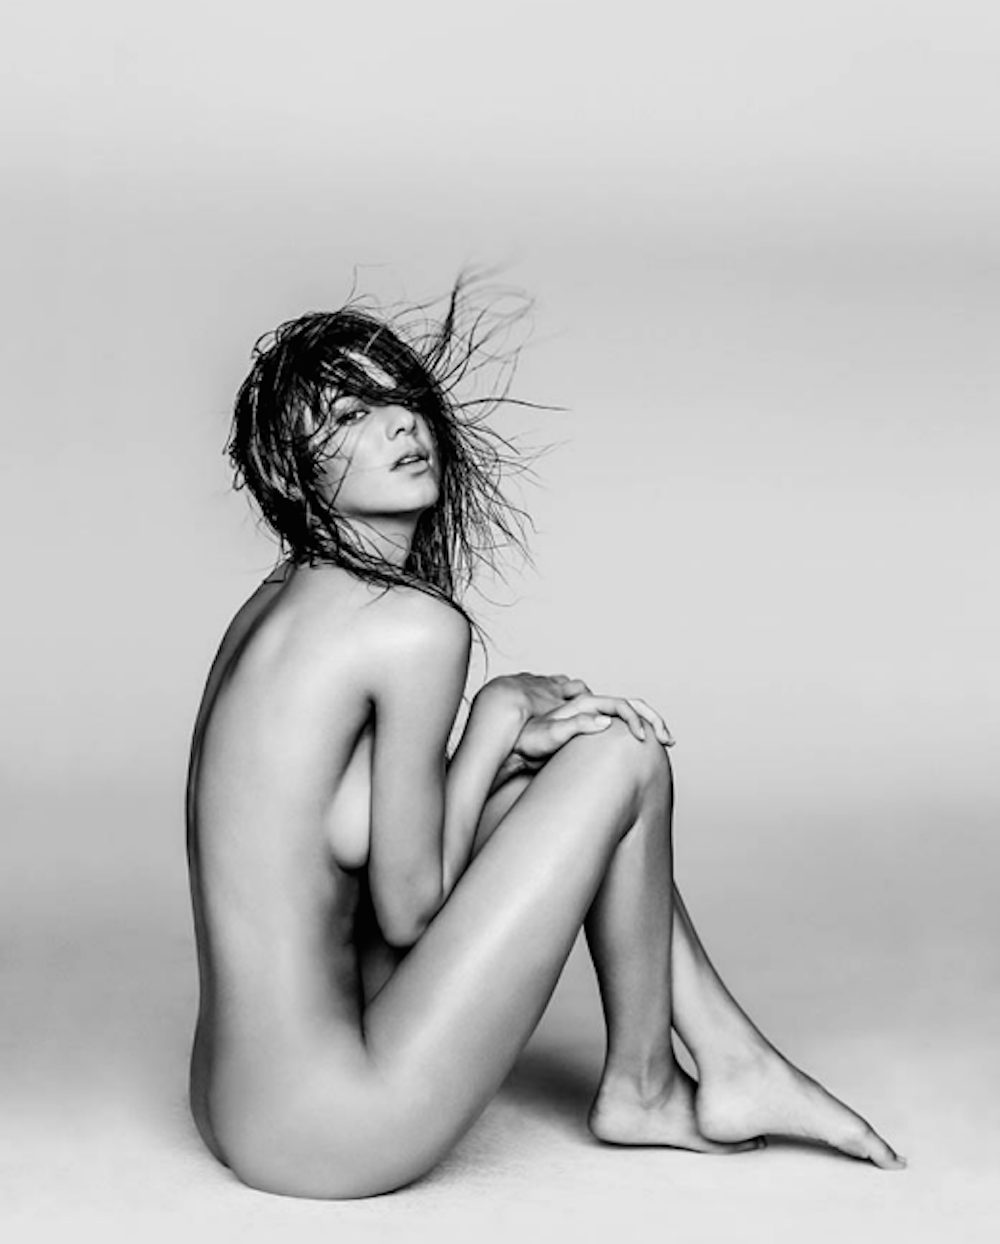 angel photographs art nude